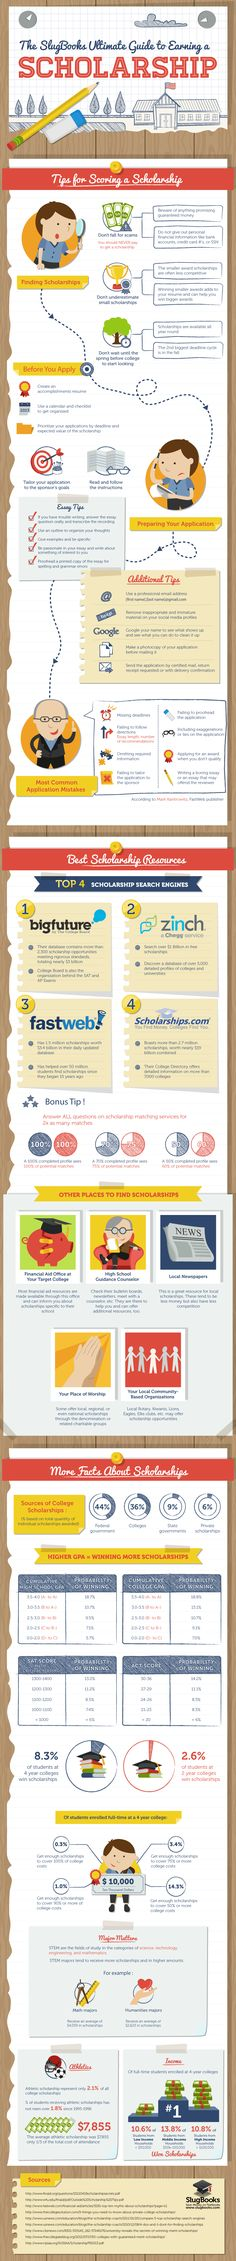 how to earn college scholarship tips infographic